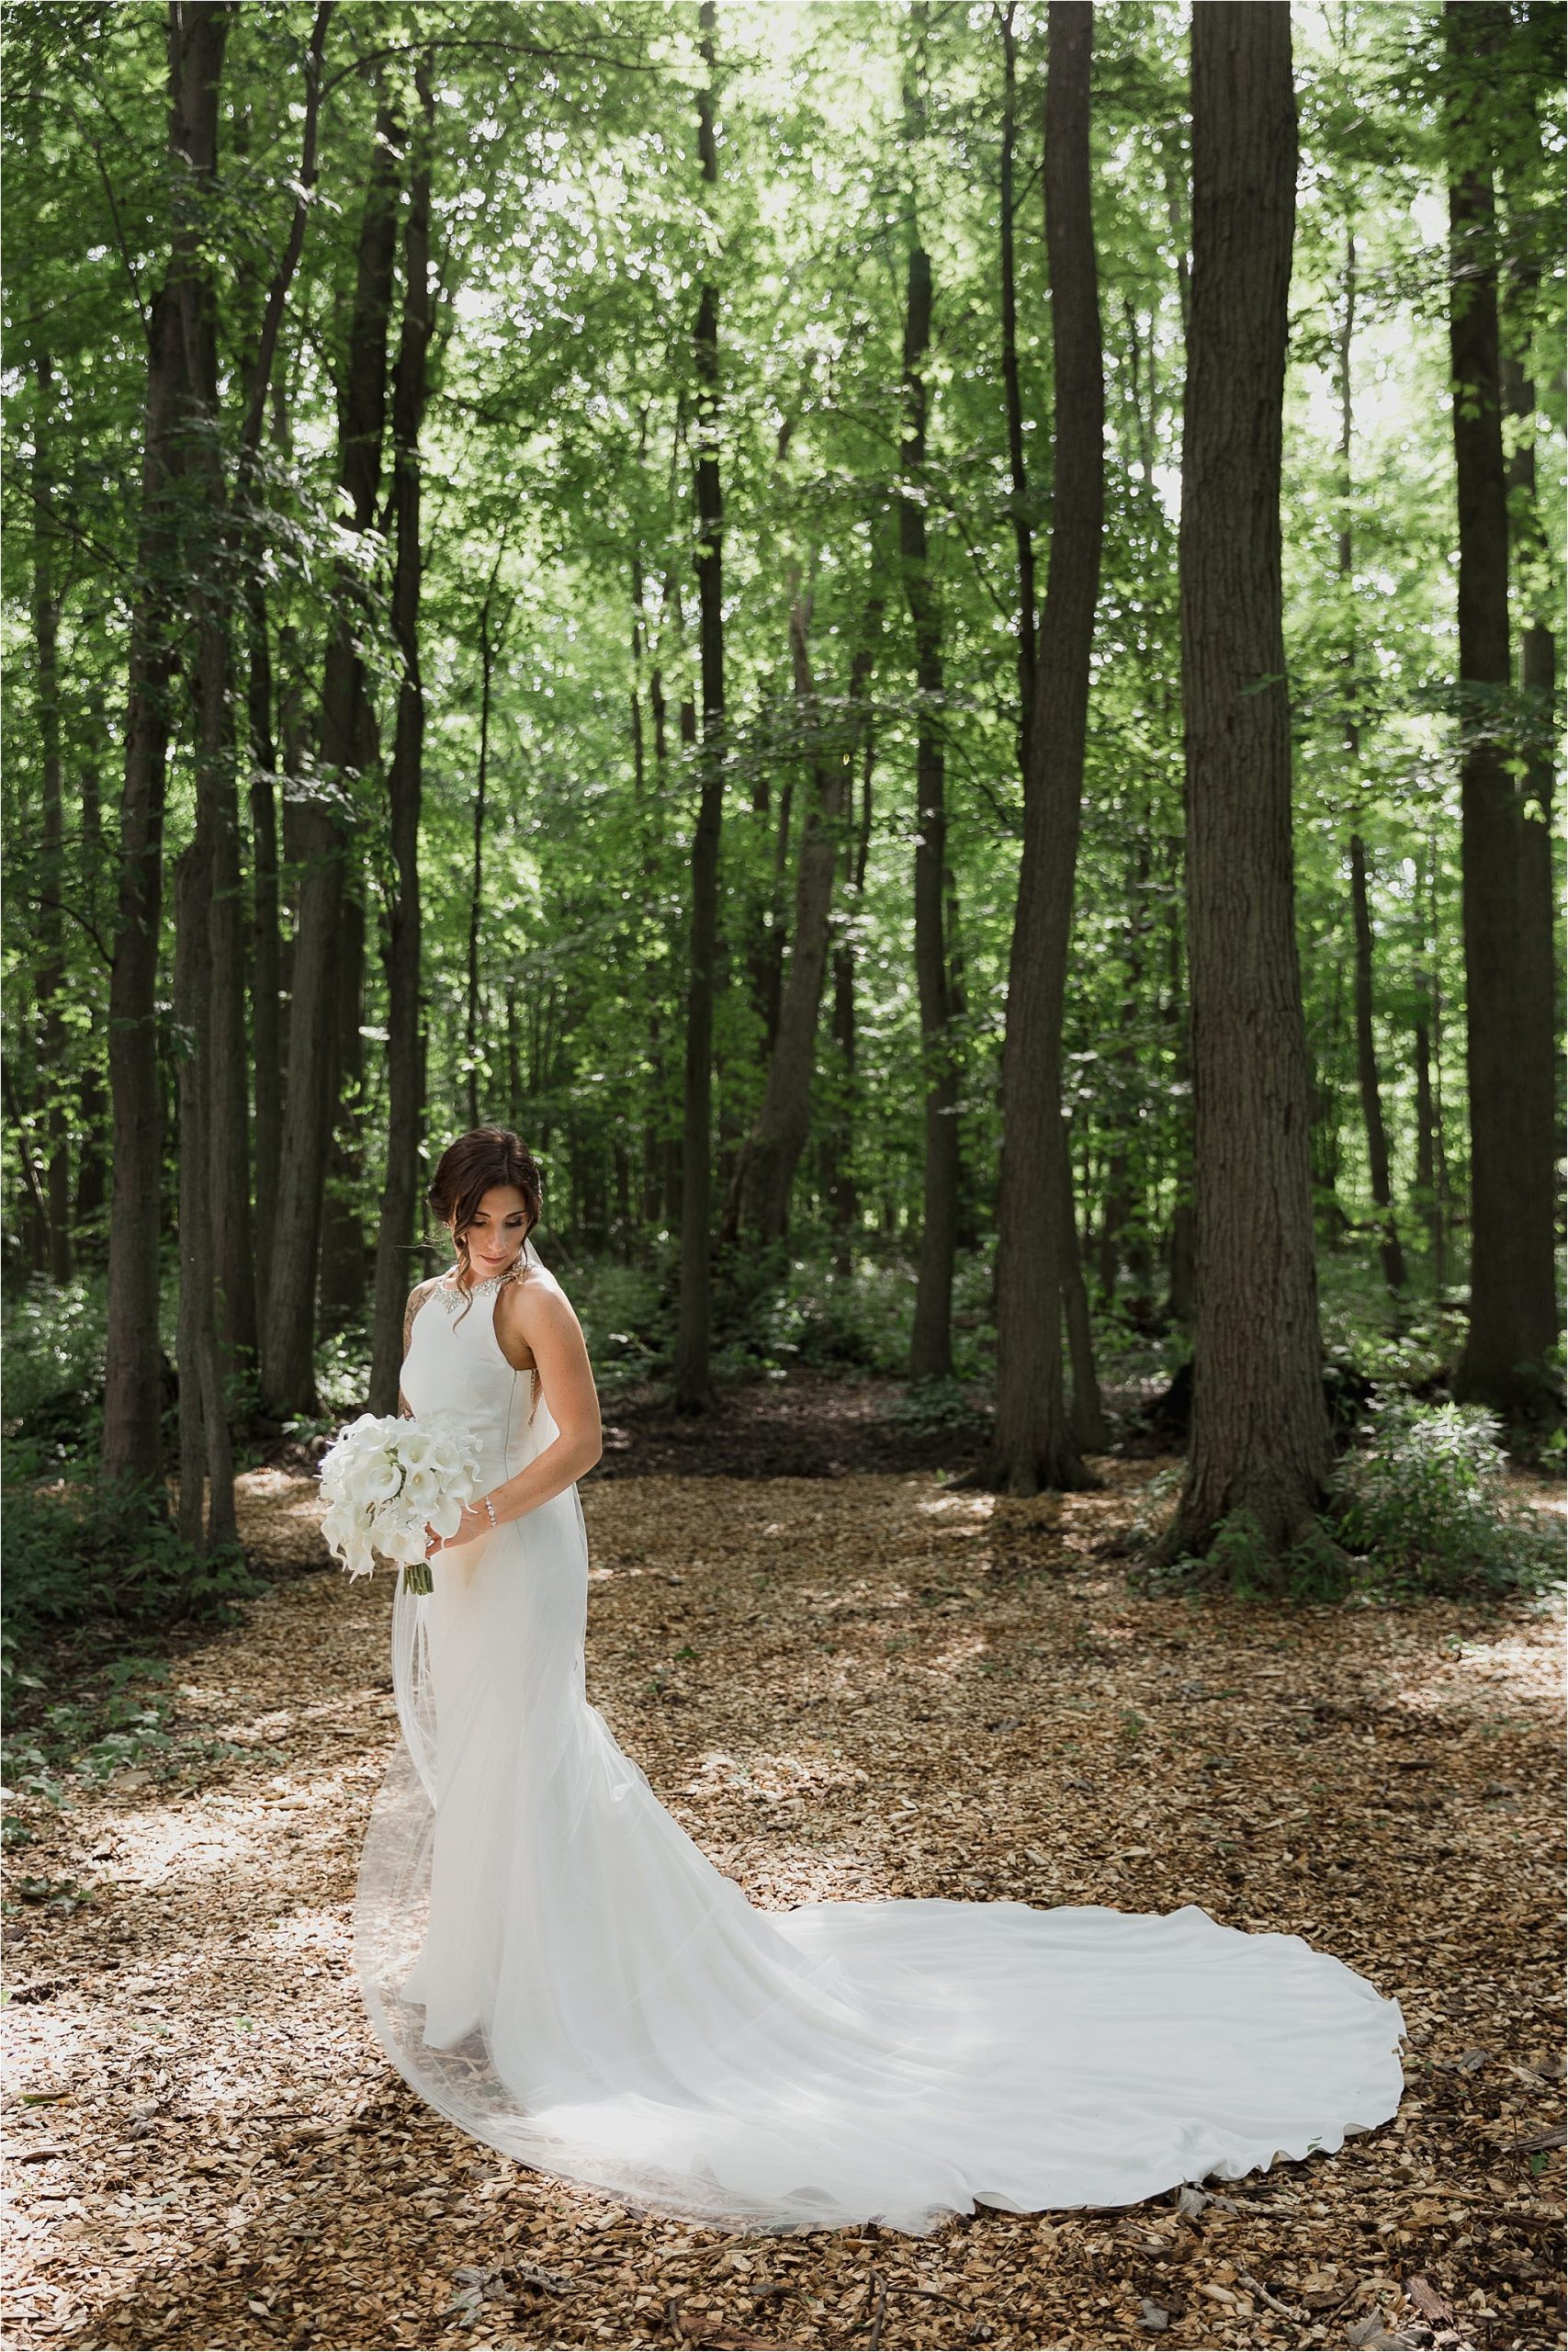 Sonia V Photography, The Clearing ceremony wedding venue, bride in the fores